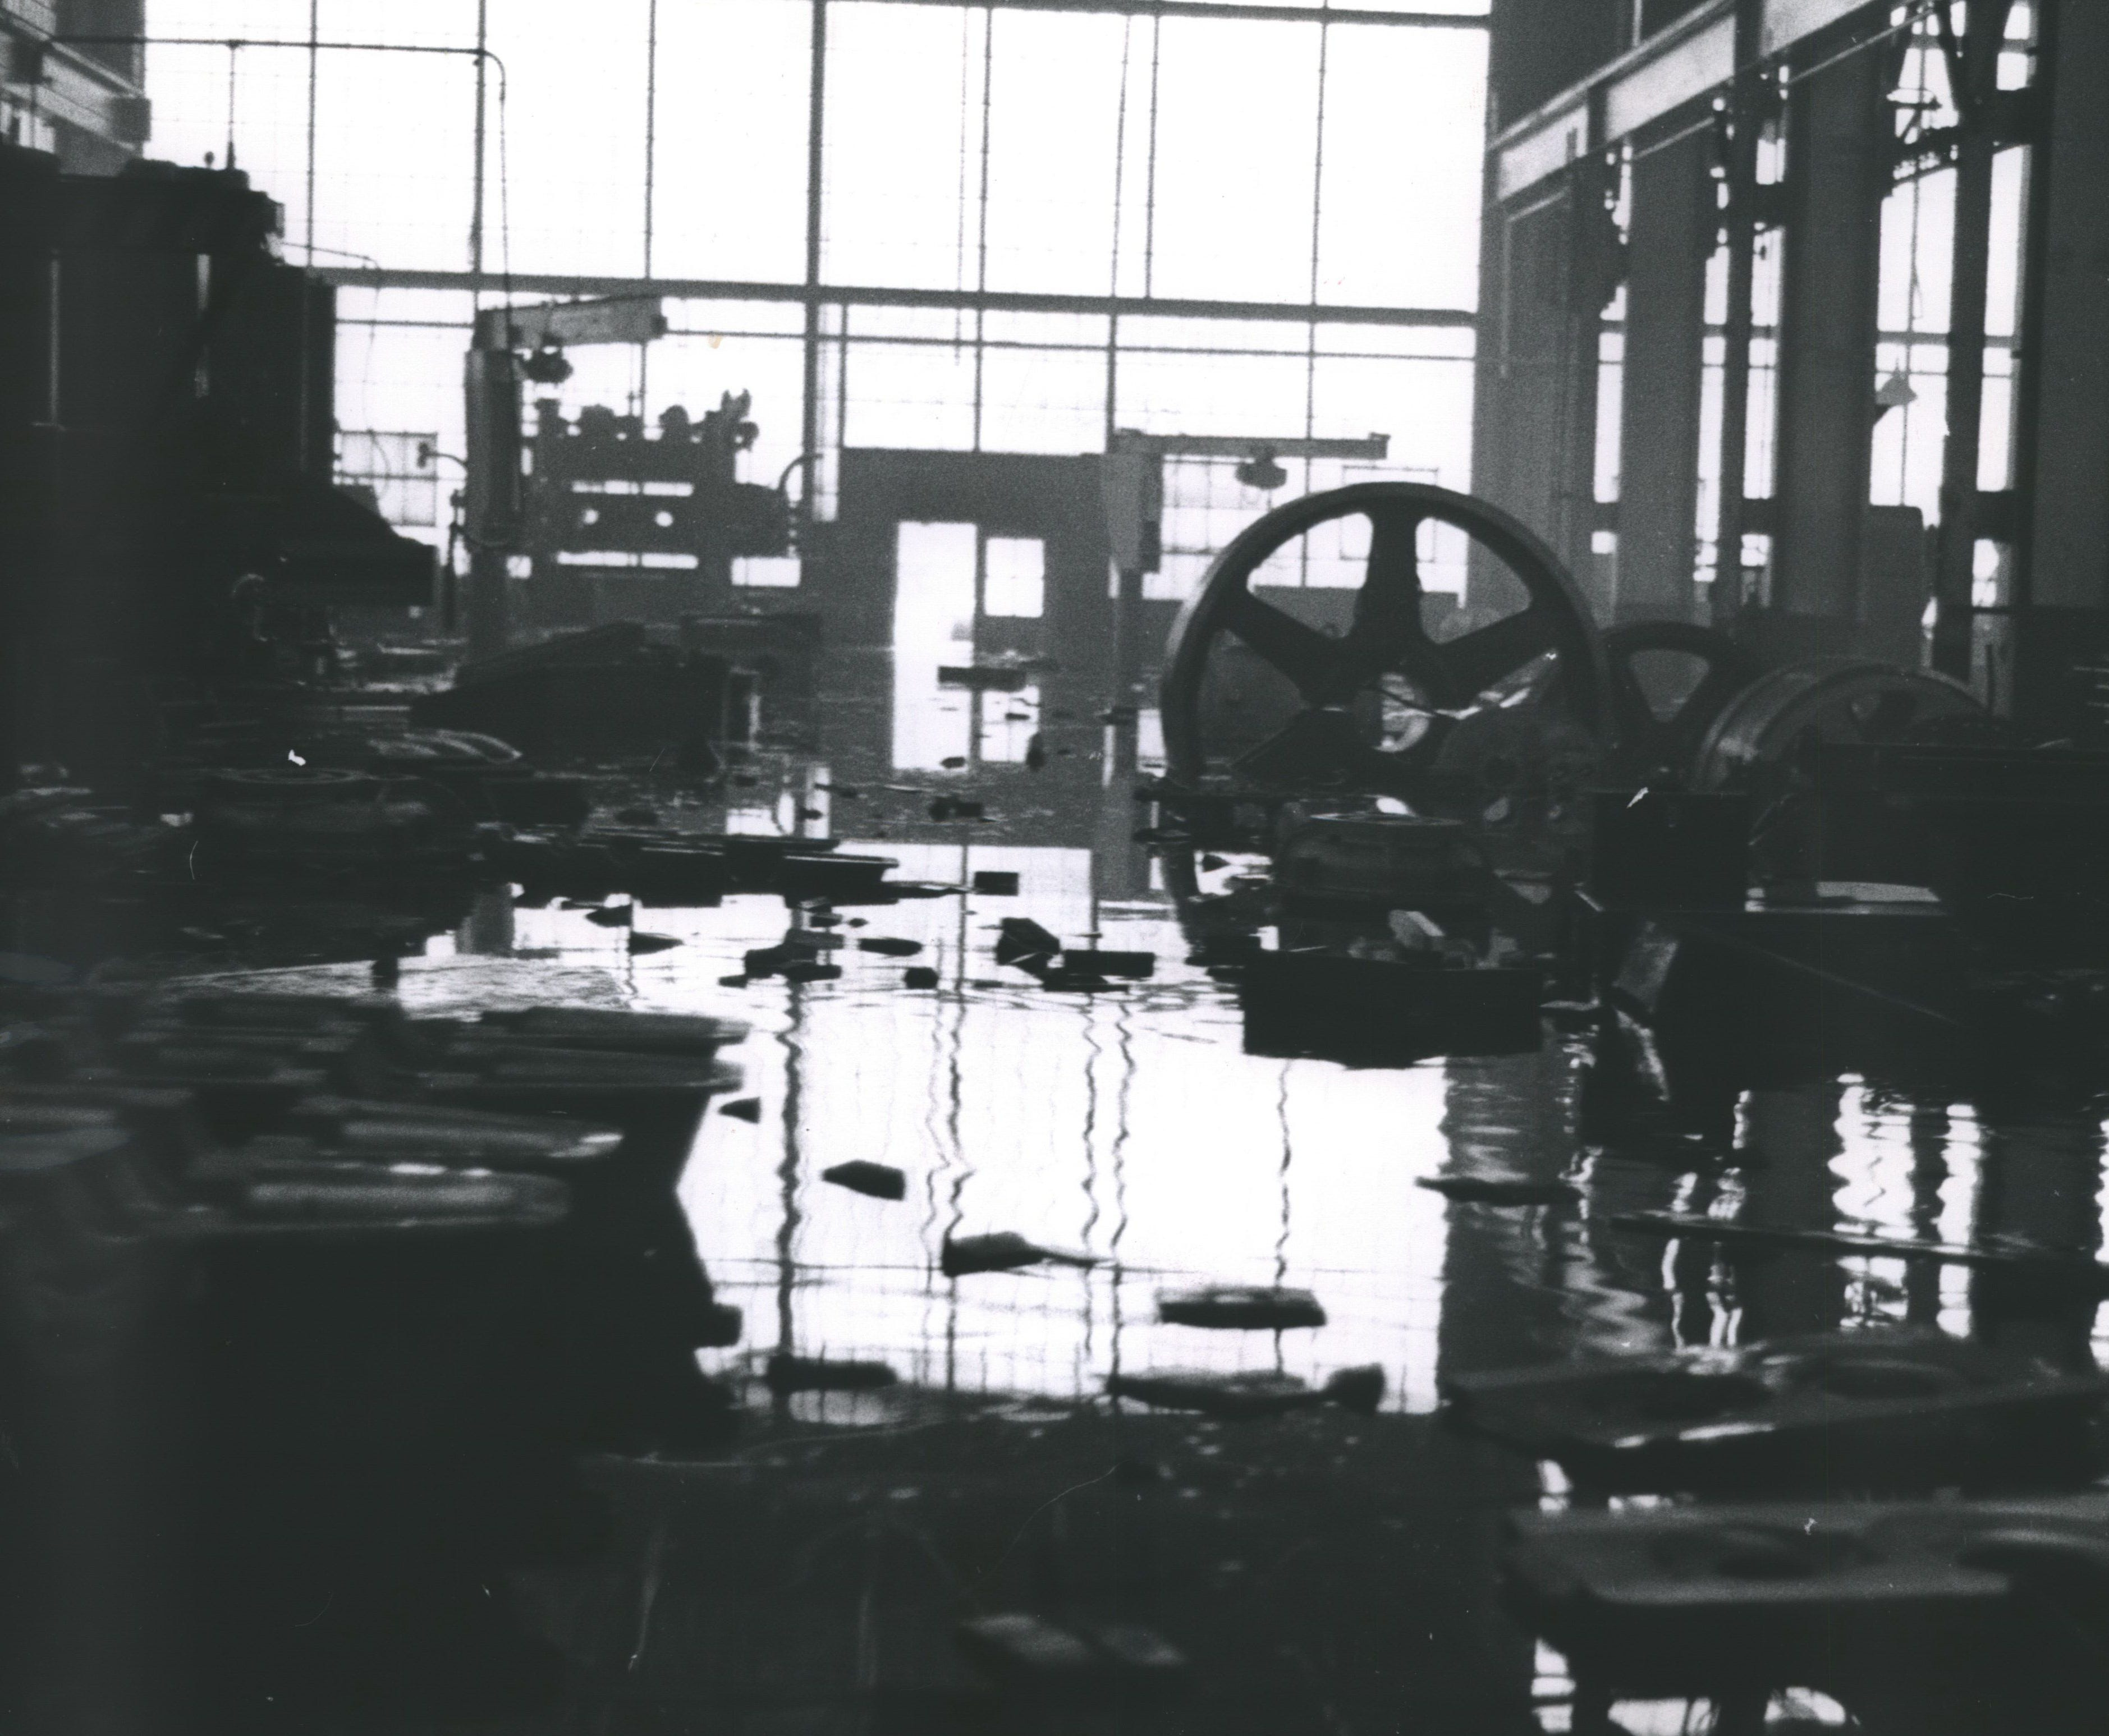 Water up to seven feet deep covers most of the machinery in the Falk Corp. plants on March 30, 1960. About 25 boats and canoes were used to rescue about 75 night shift workers after the rain-swollen Menomonee River poured into the plant at 3001 W. Canal St. This photo was published in the March 30, 1960, Milwaukee Journal.